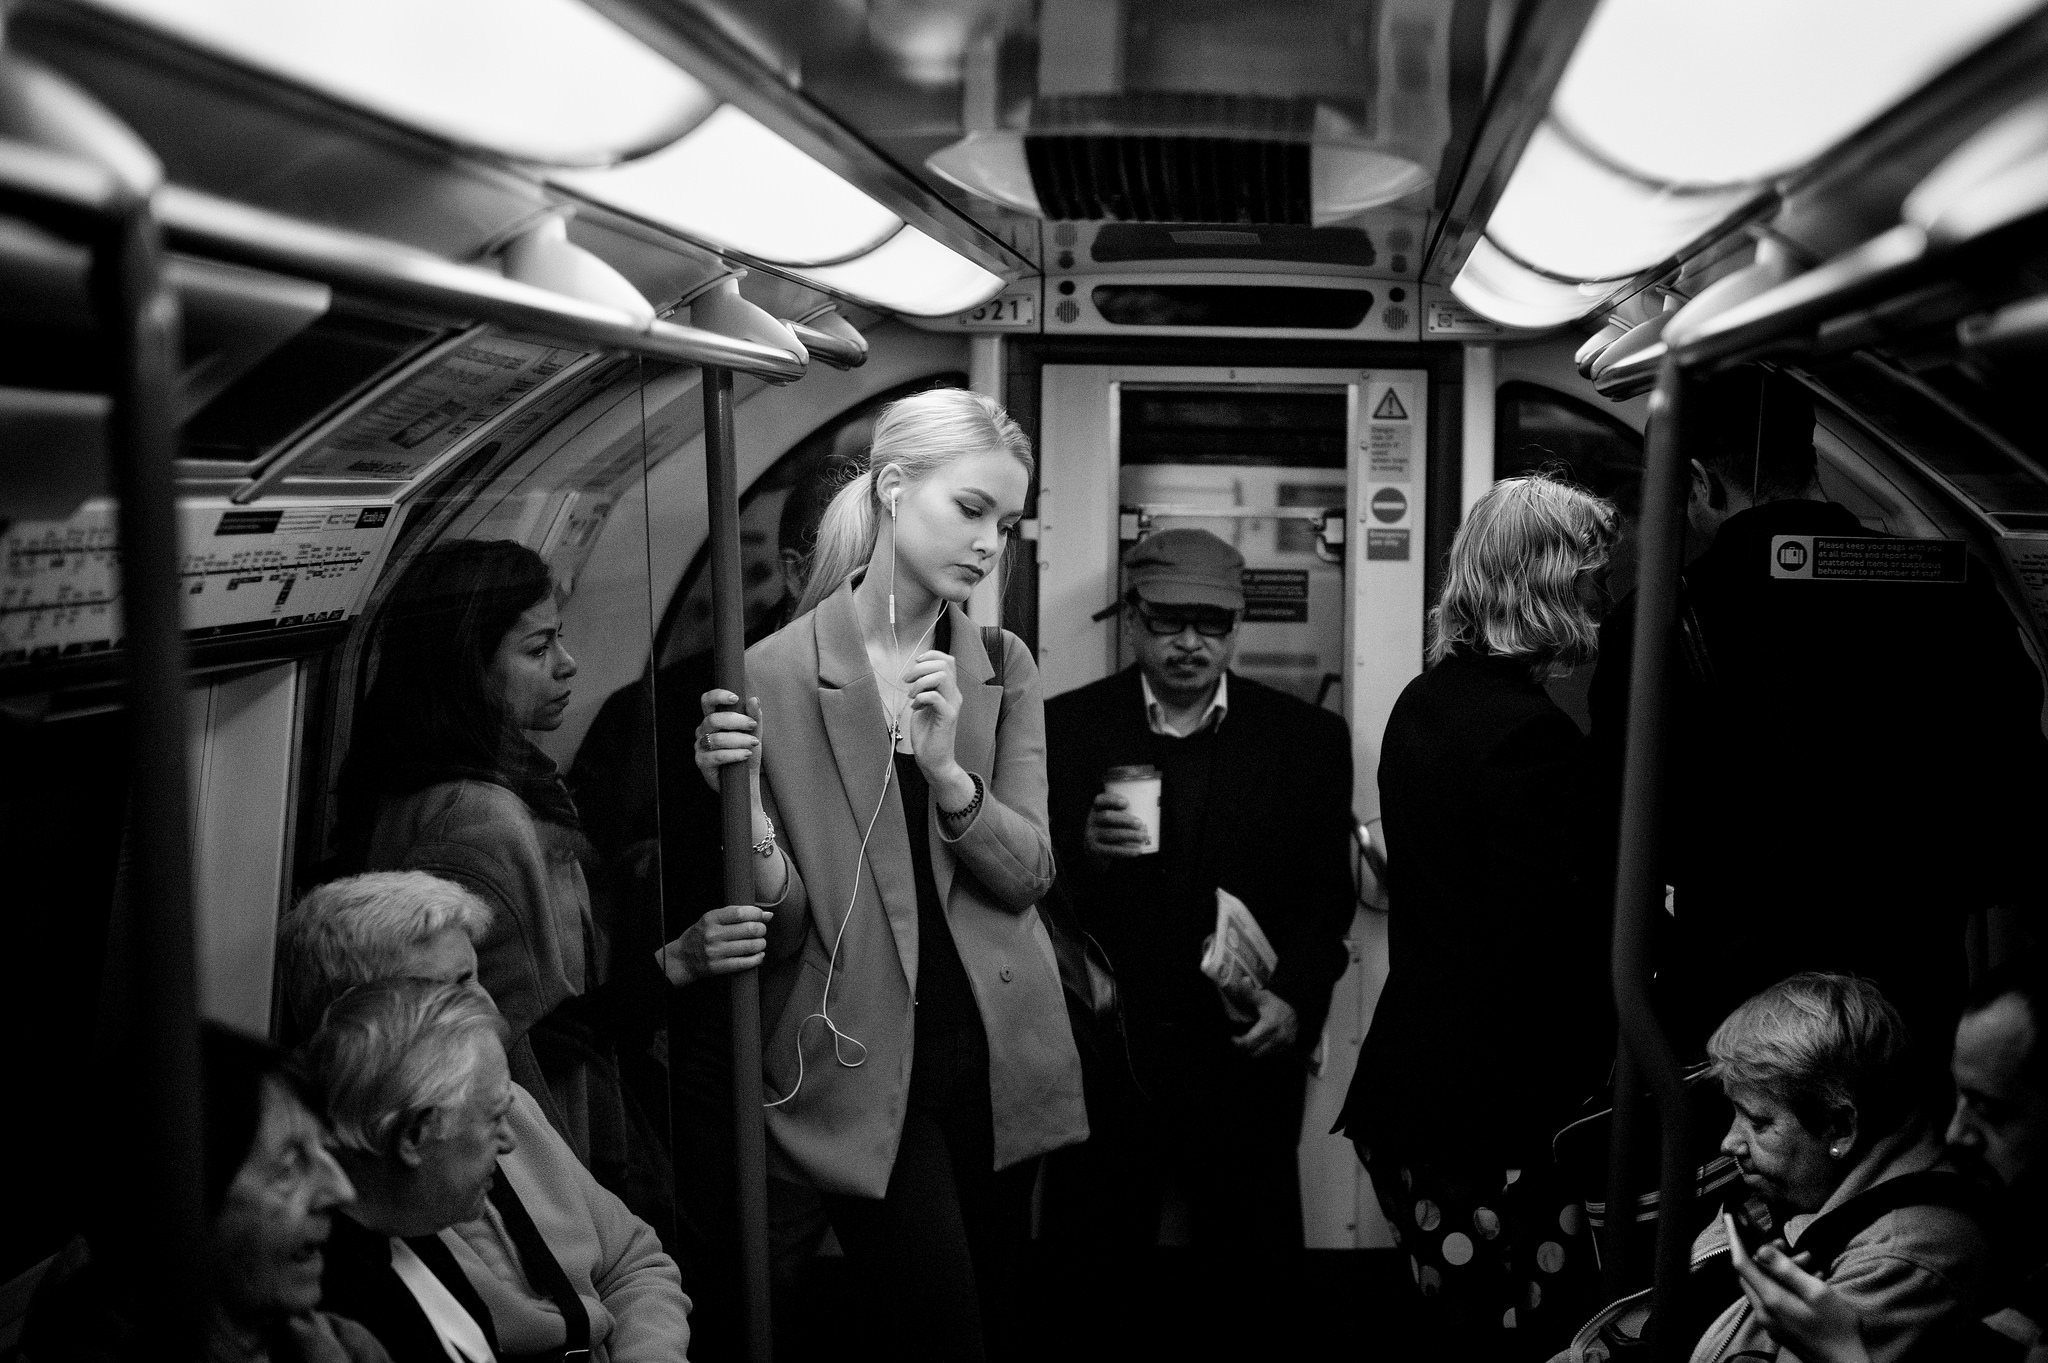 Black and white photo of a woman on the Tube.